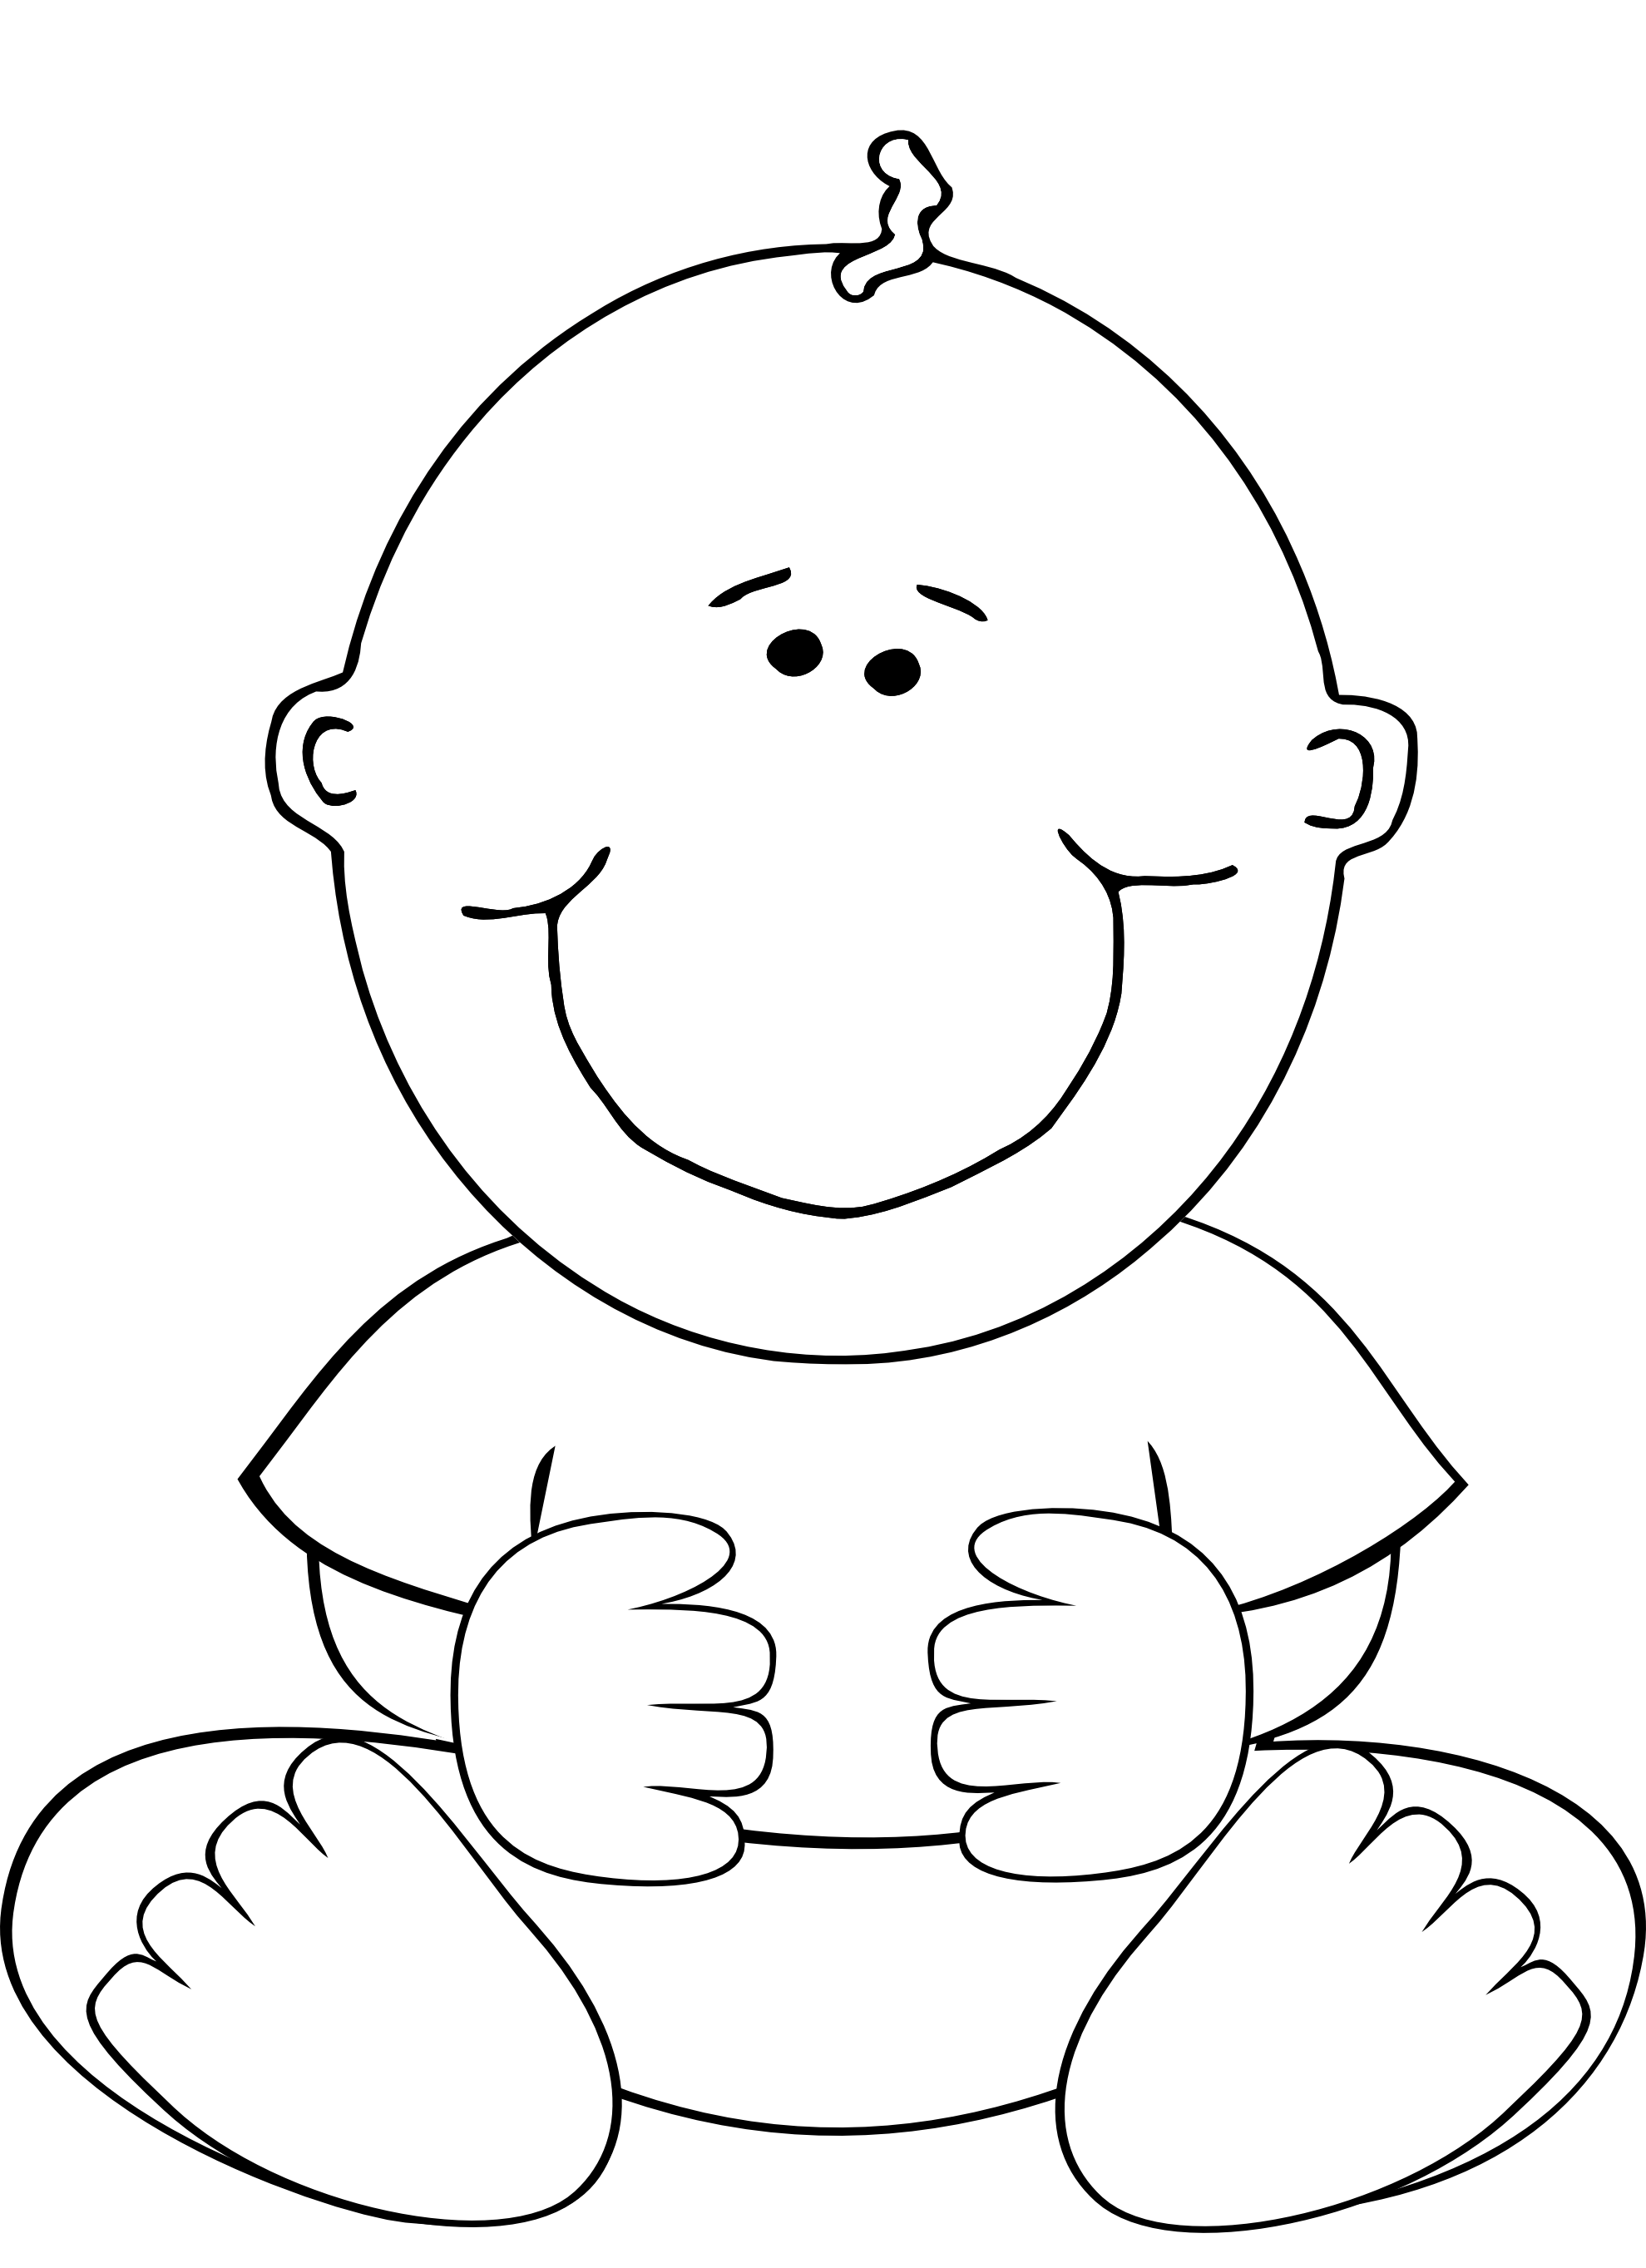 Mashed clipart black and white. Free babies cliparts download